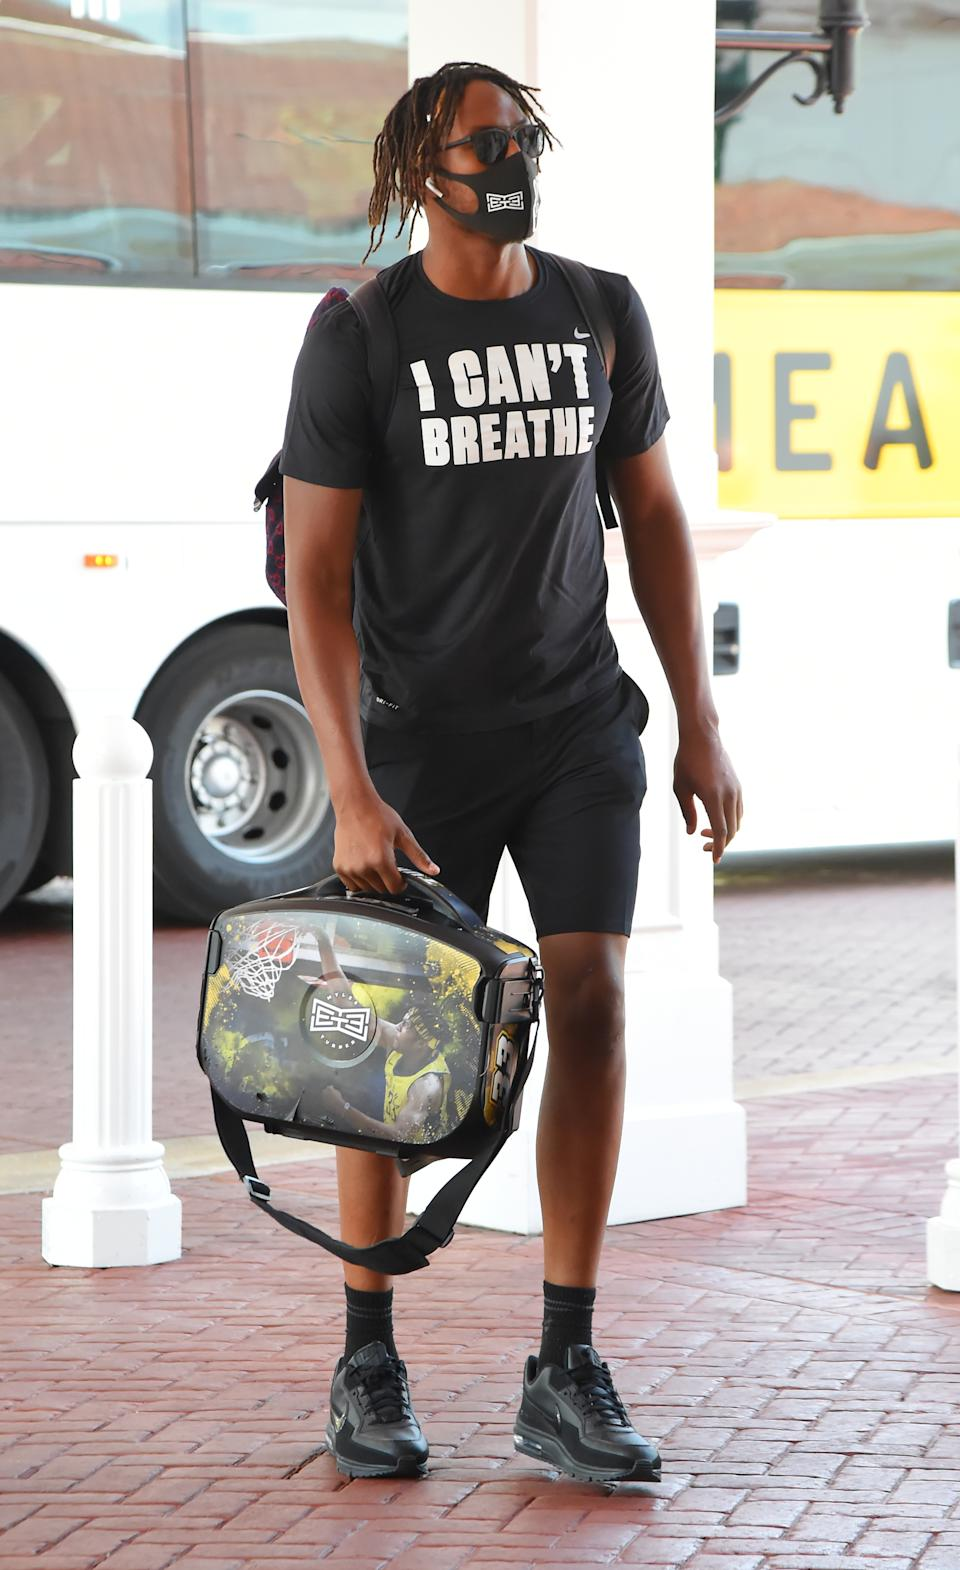 Myles Turner of the Indiana Pacers arrives at the hotel as part of the NBA Restart 2020 on July 9, 2020 in Orlando, Florida. (Photo by Bill Baptist/NBAE via Getty Images)